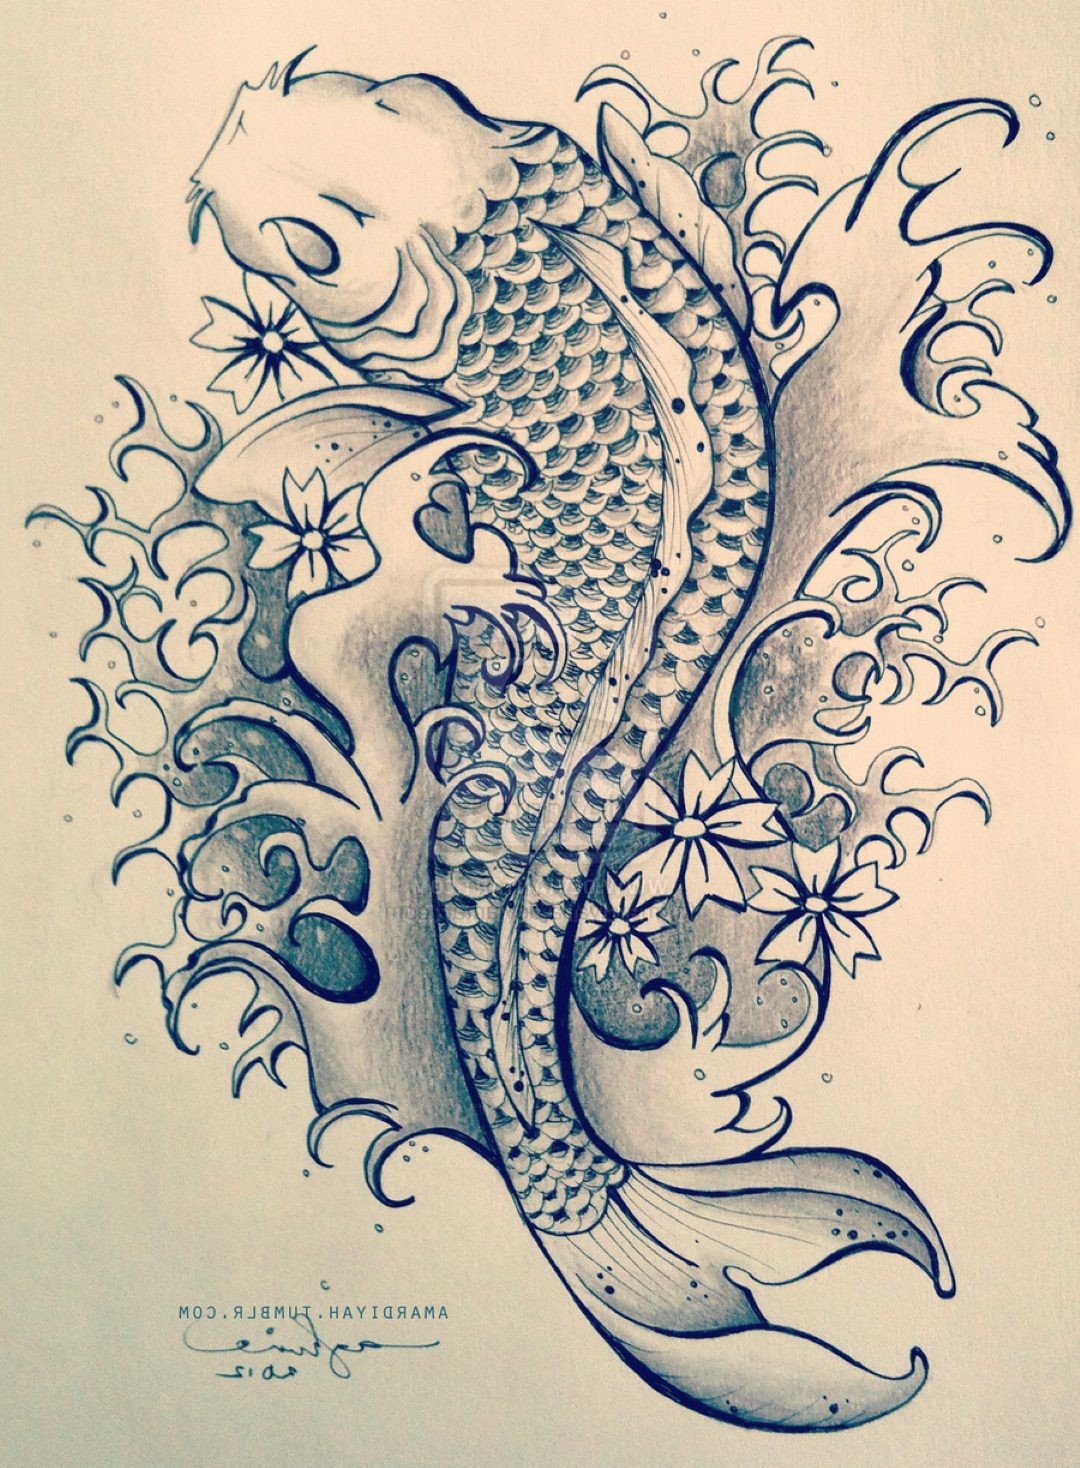 Best koi fish tattoo ideas tatto pinterest koi fish for Best koi fish tattoo